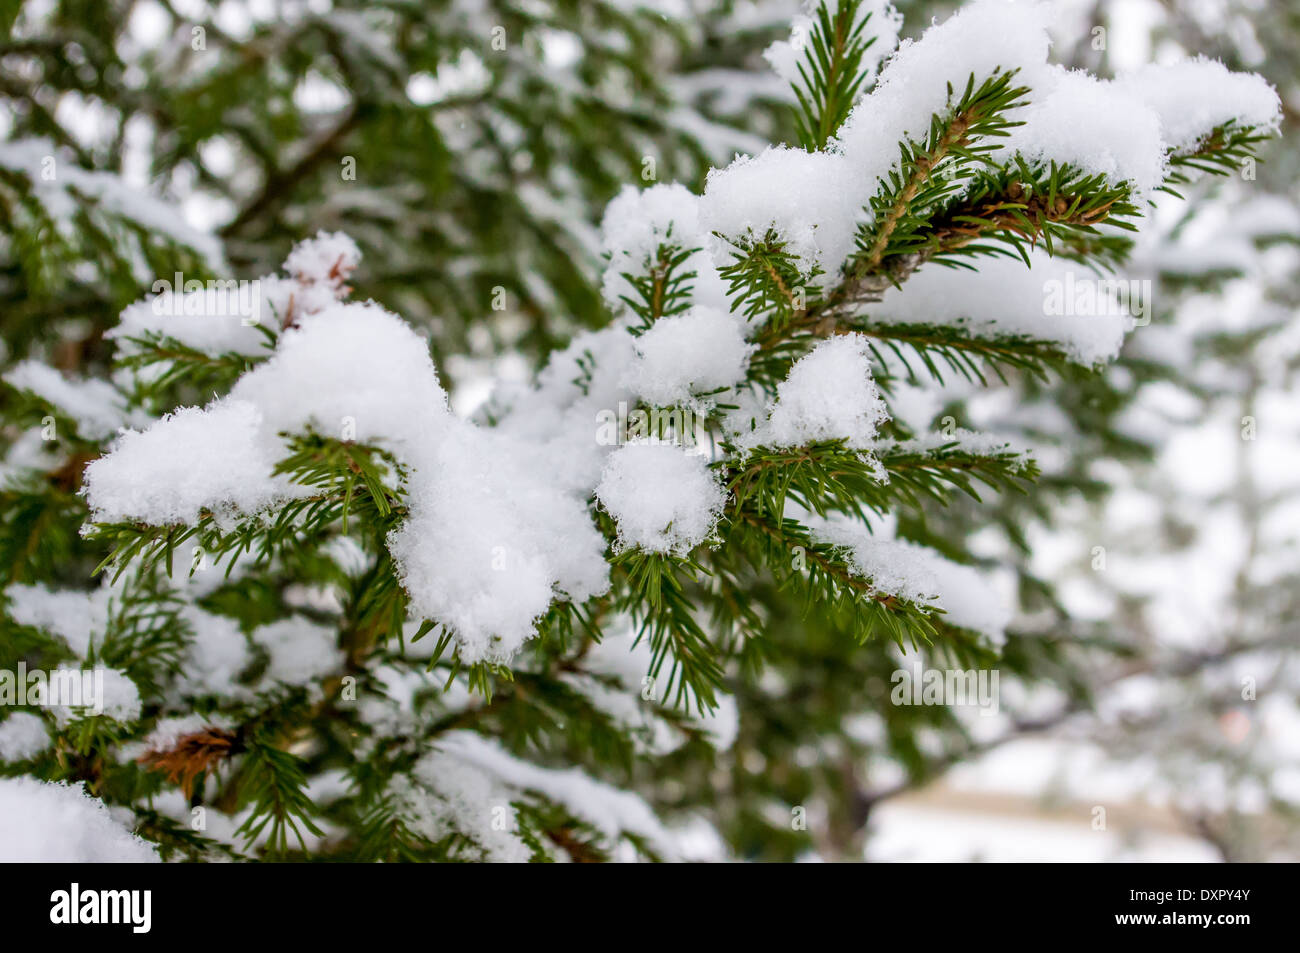 Conifer, spruce, pine, fir, Christmas tree branches covered with snow - Stock Image